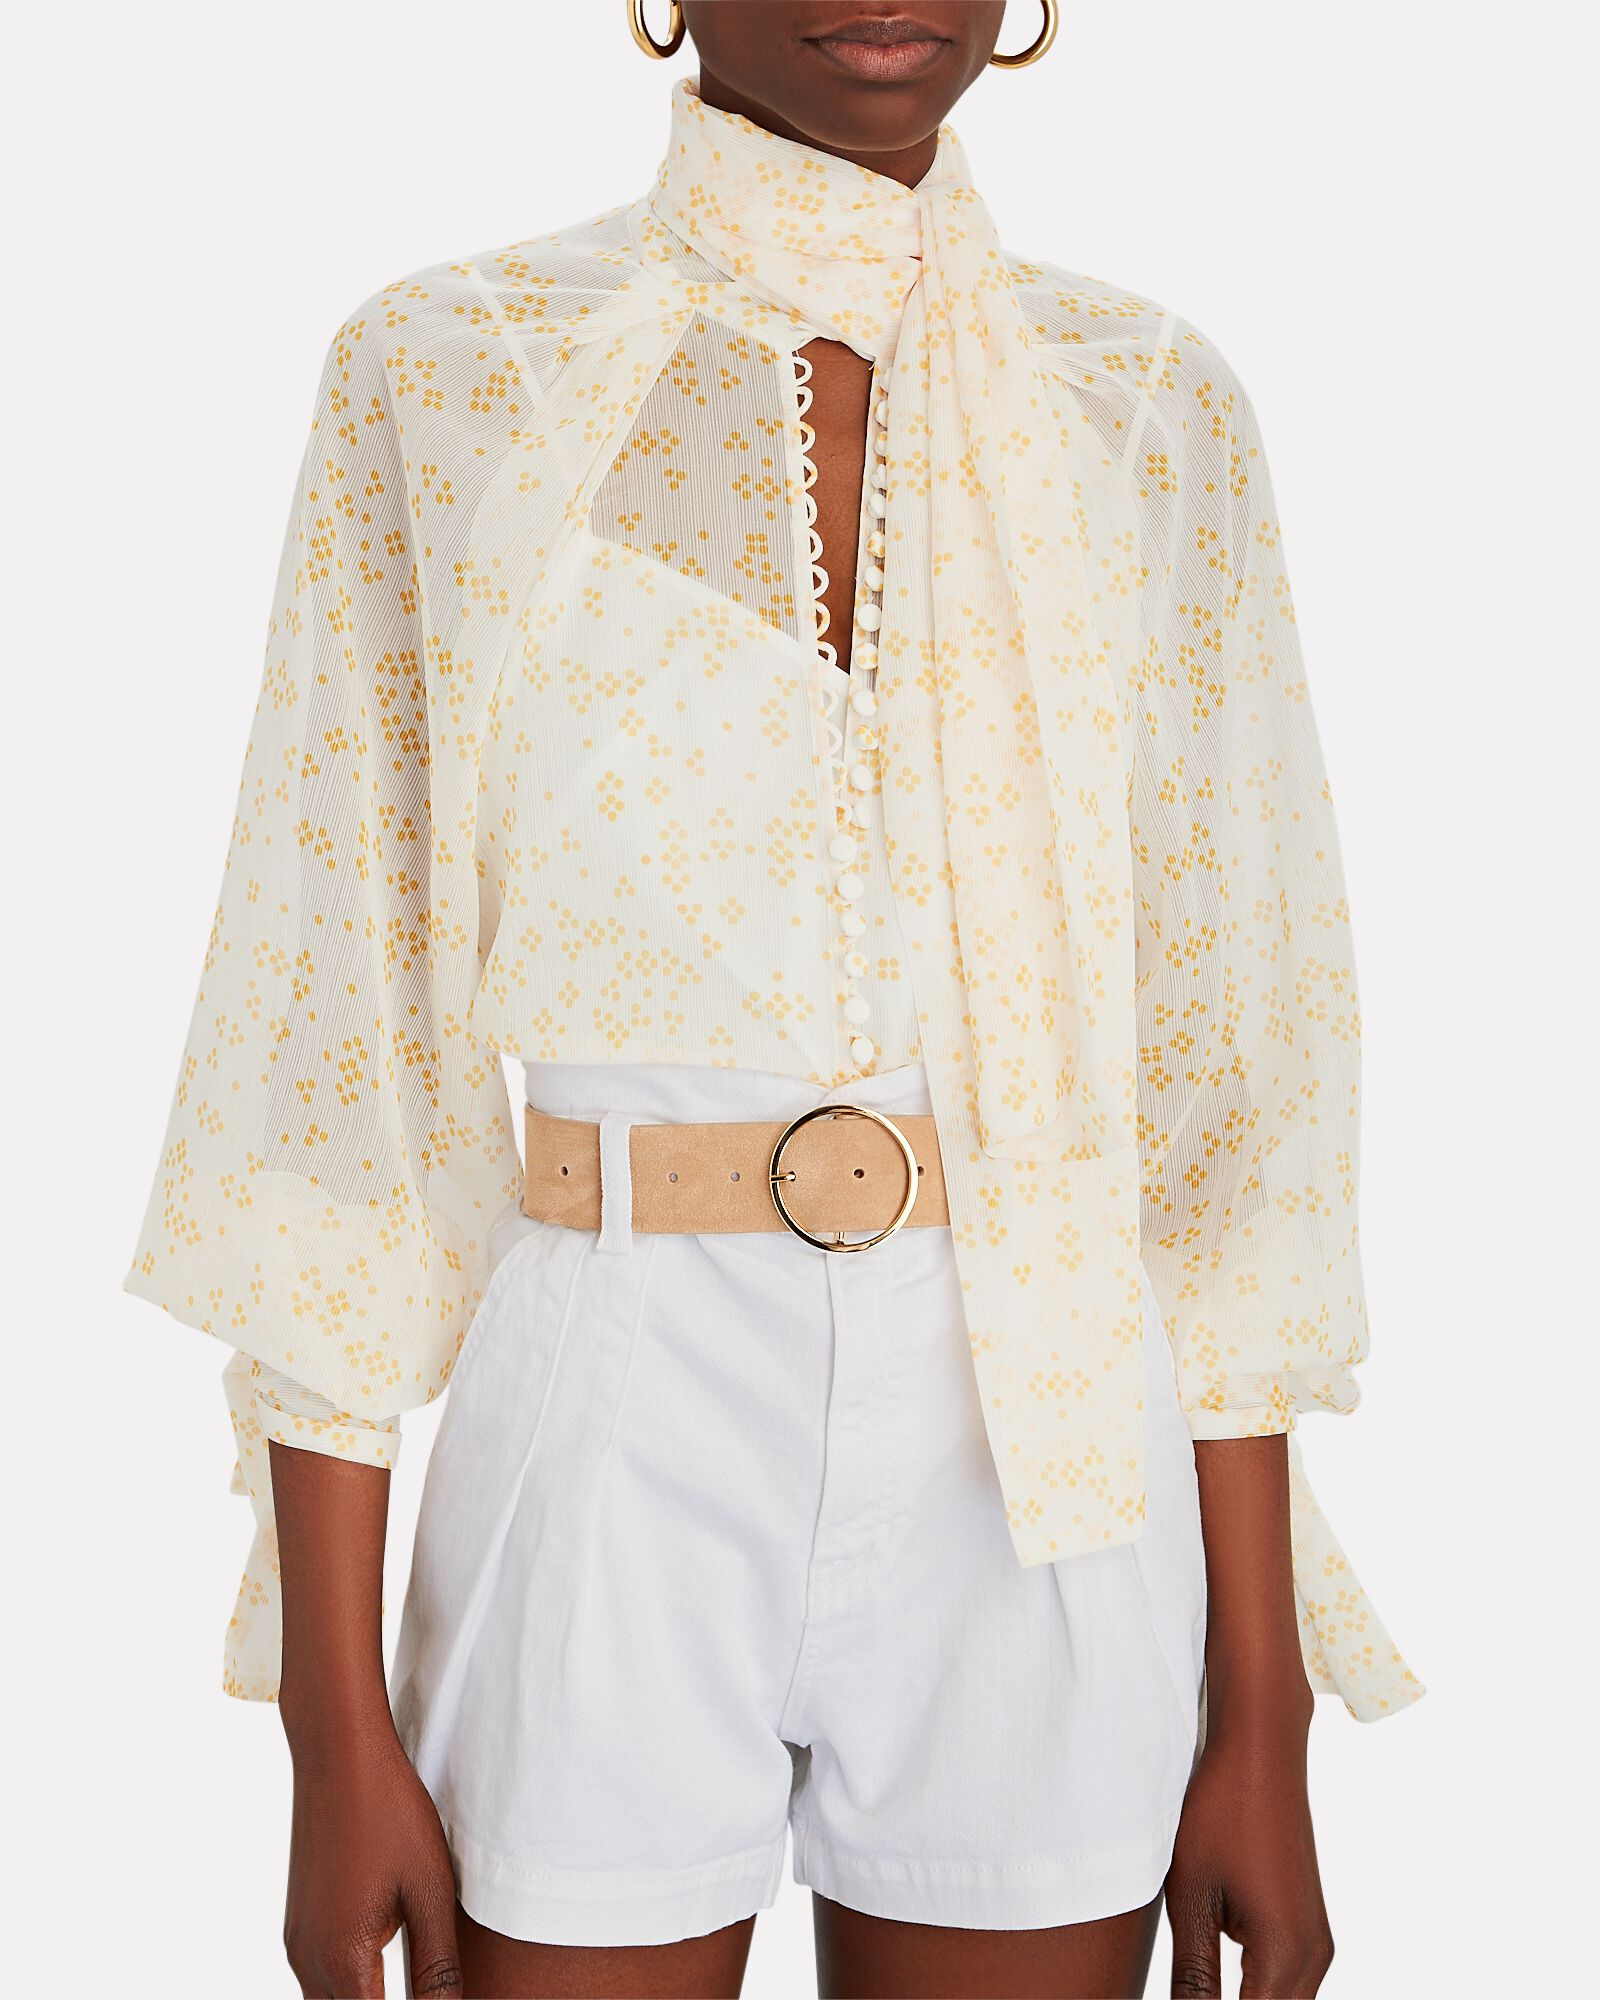 Cathedral Tie-Neck Chiffon Blouse, IVORY/YELLOW, hi-res